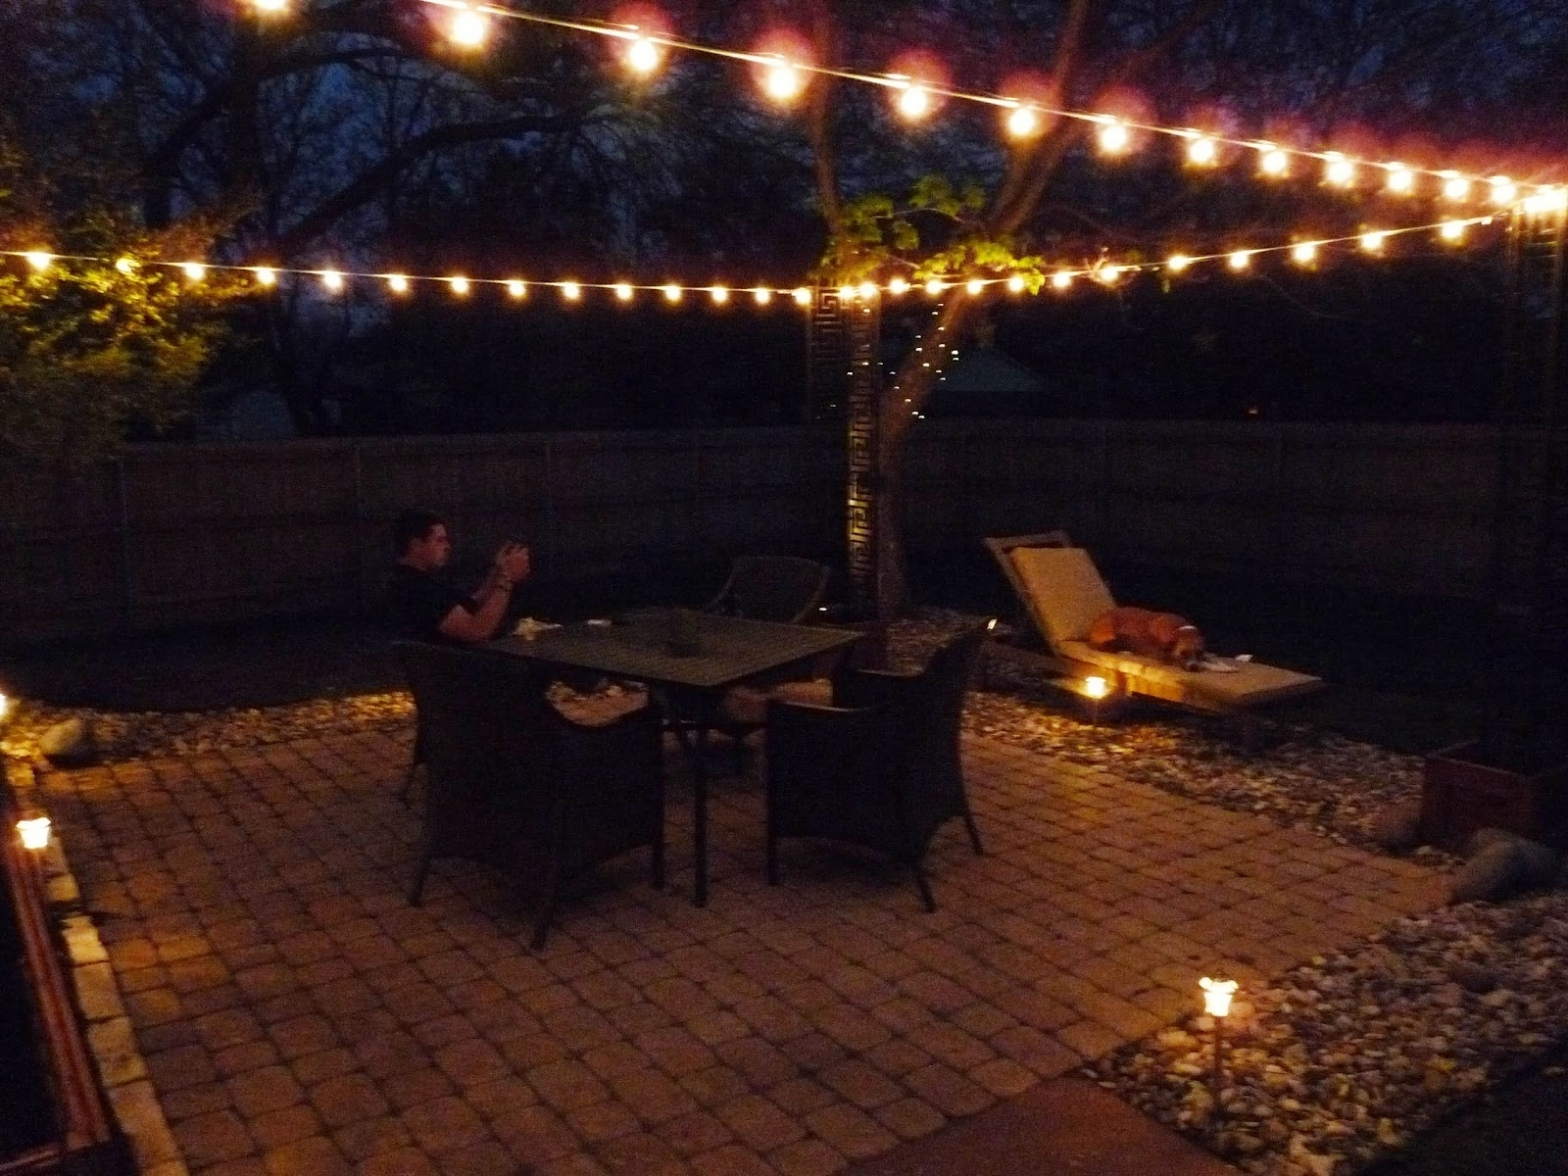 Lighting: Outdoor String Patio Lights Led • Outdoor Lighting Within Outdoor String And Patio Lights (View 11 of 15)